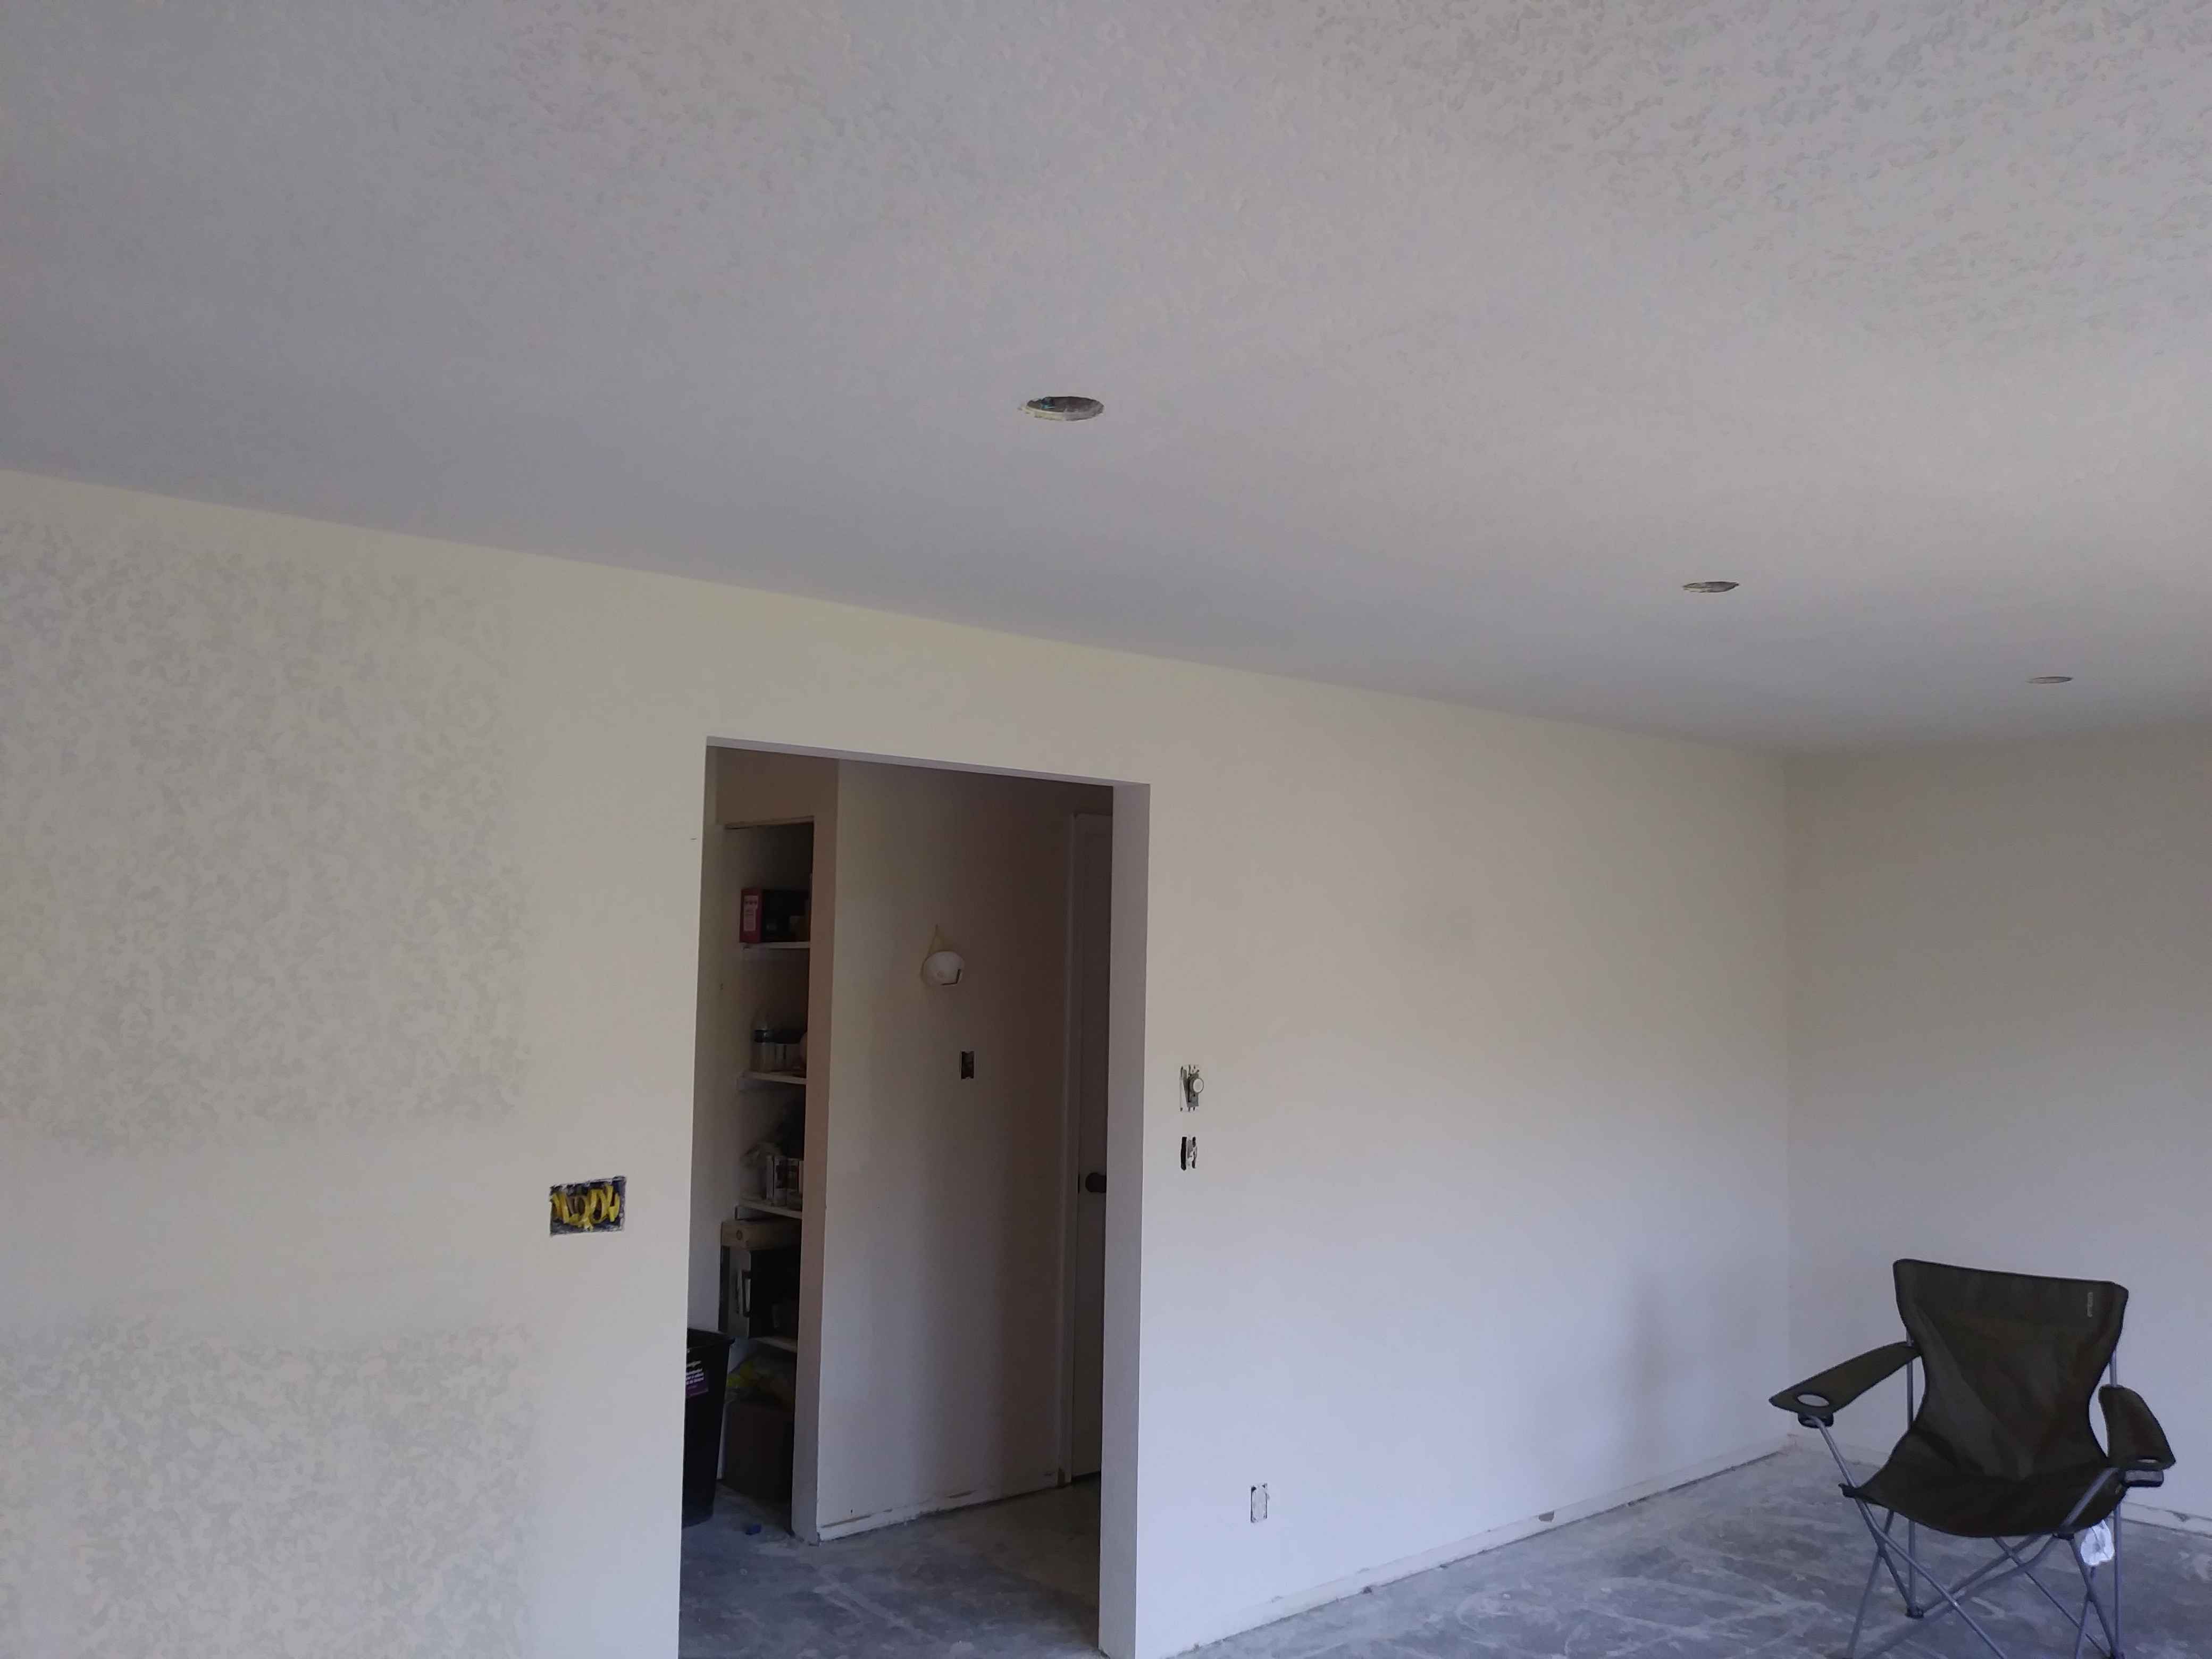 Interior walls and doorway drywall finished